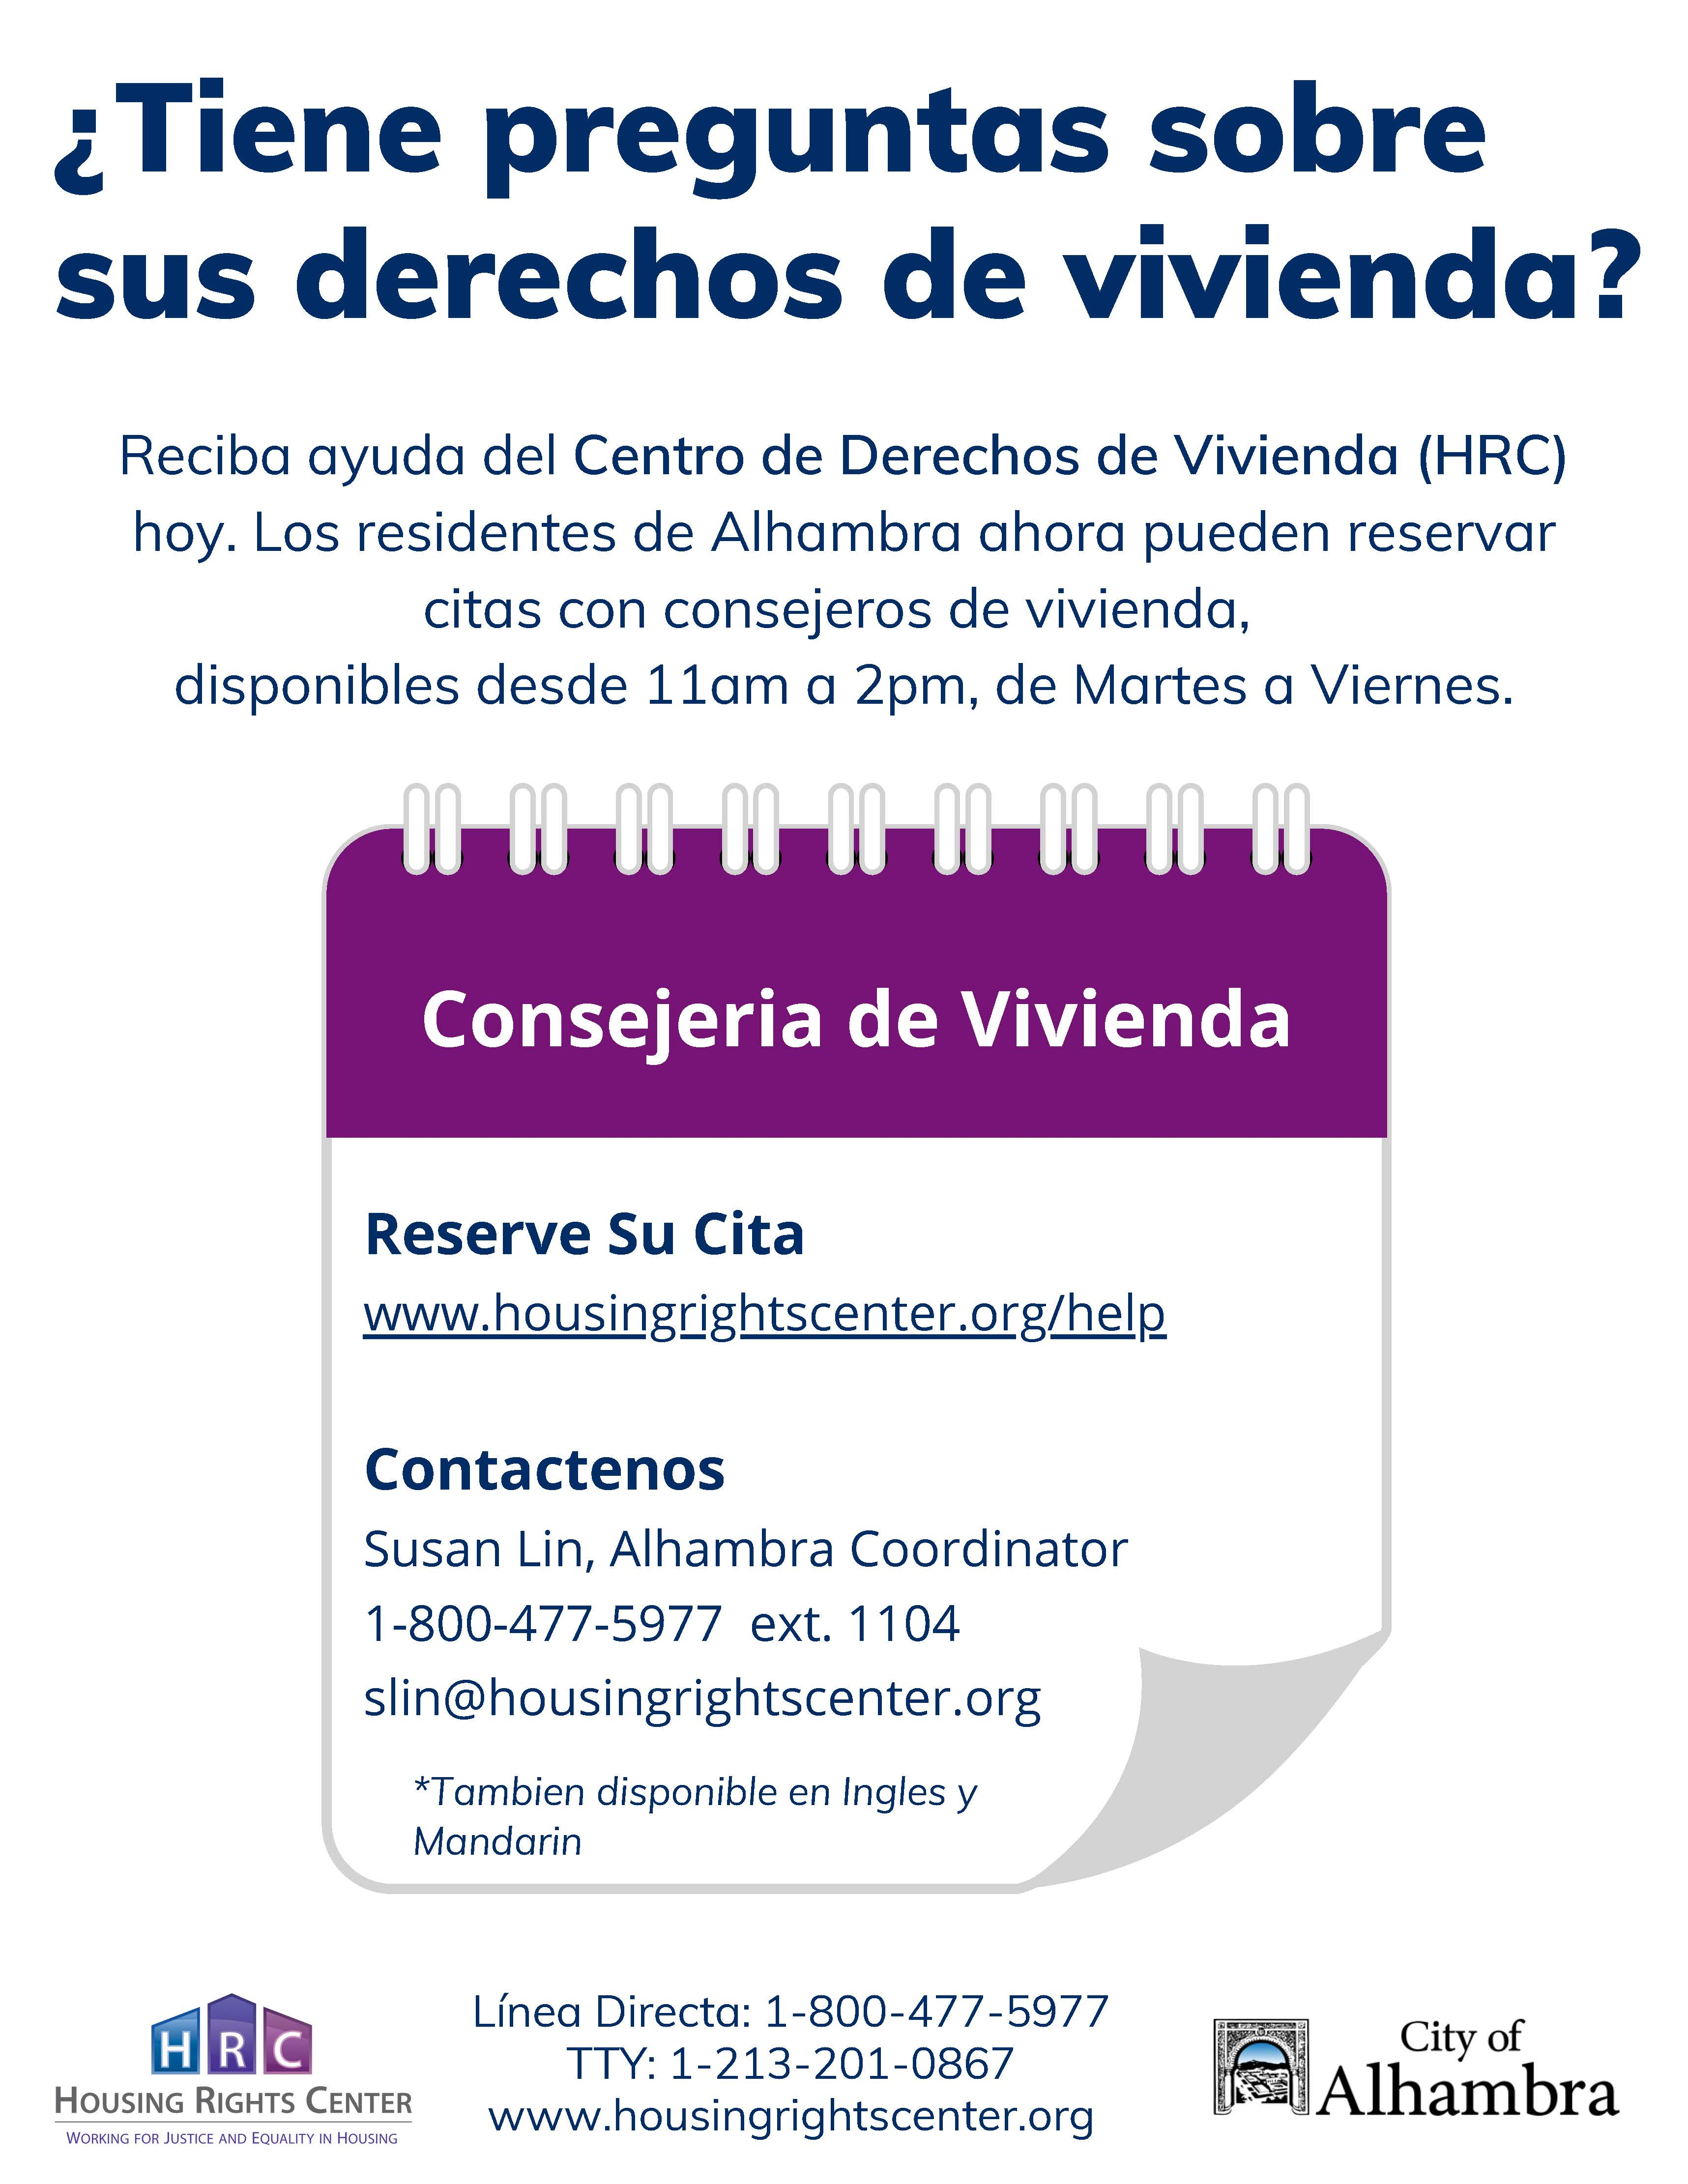 Housing rights appointment info in Spanish